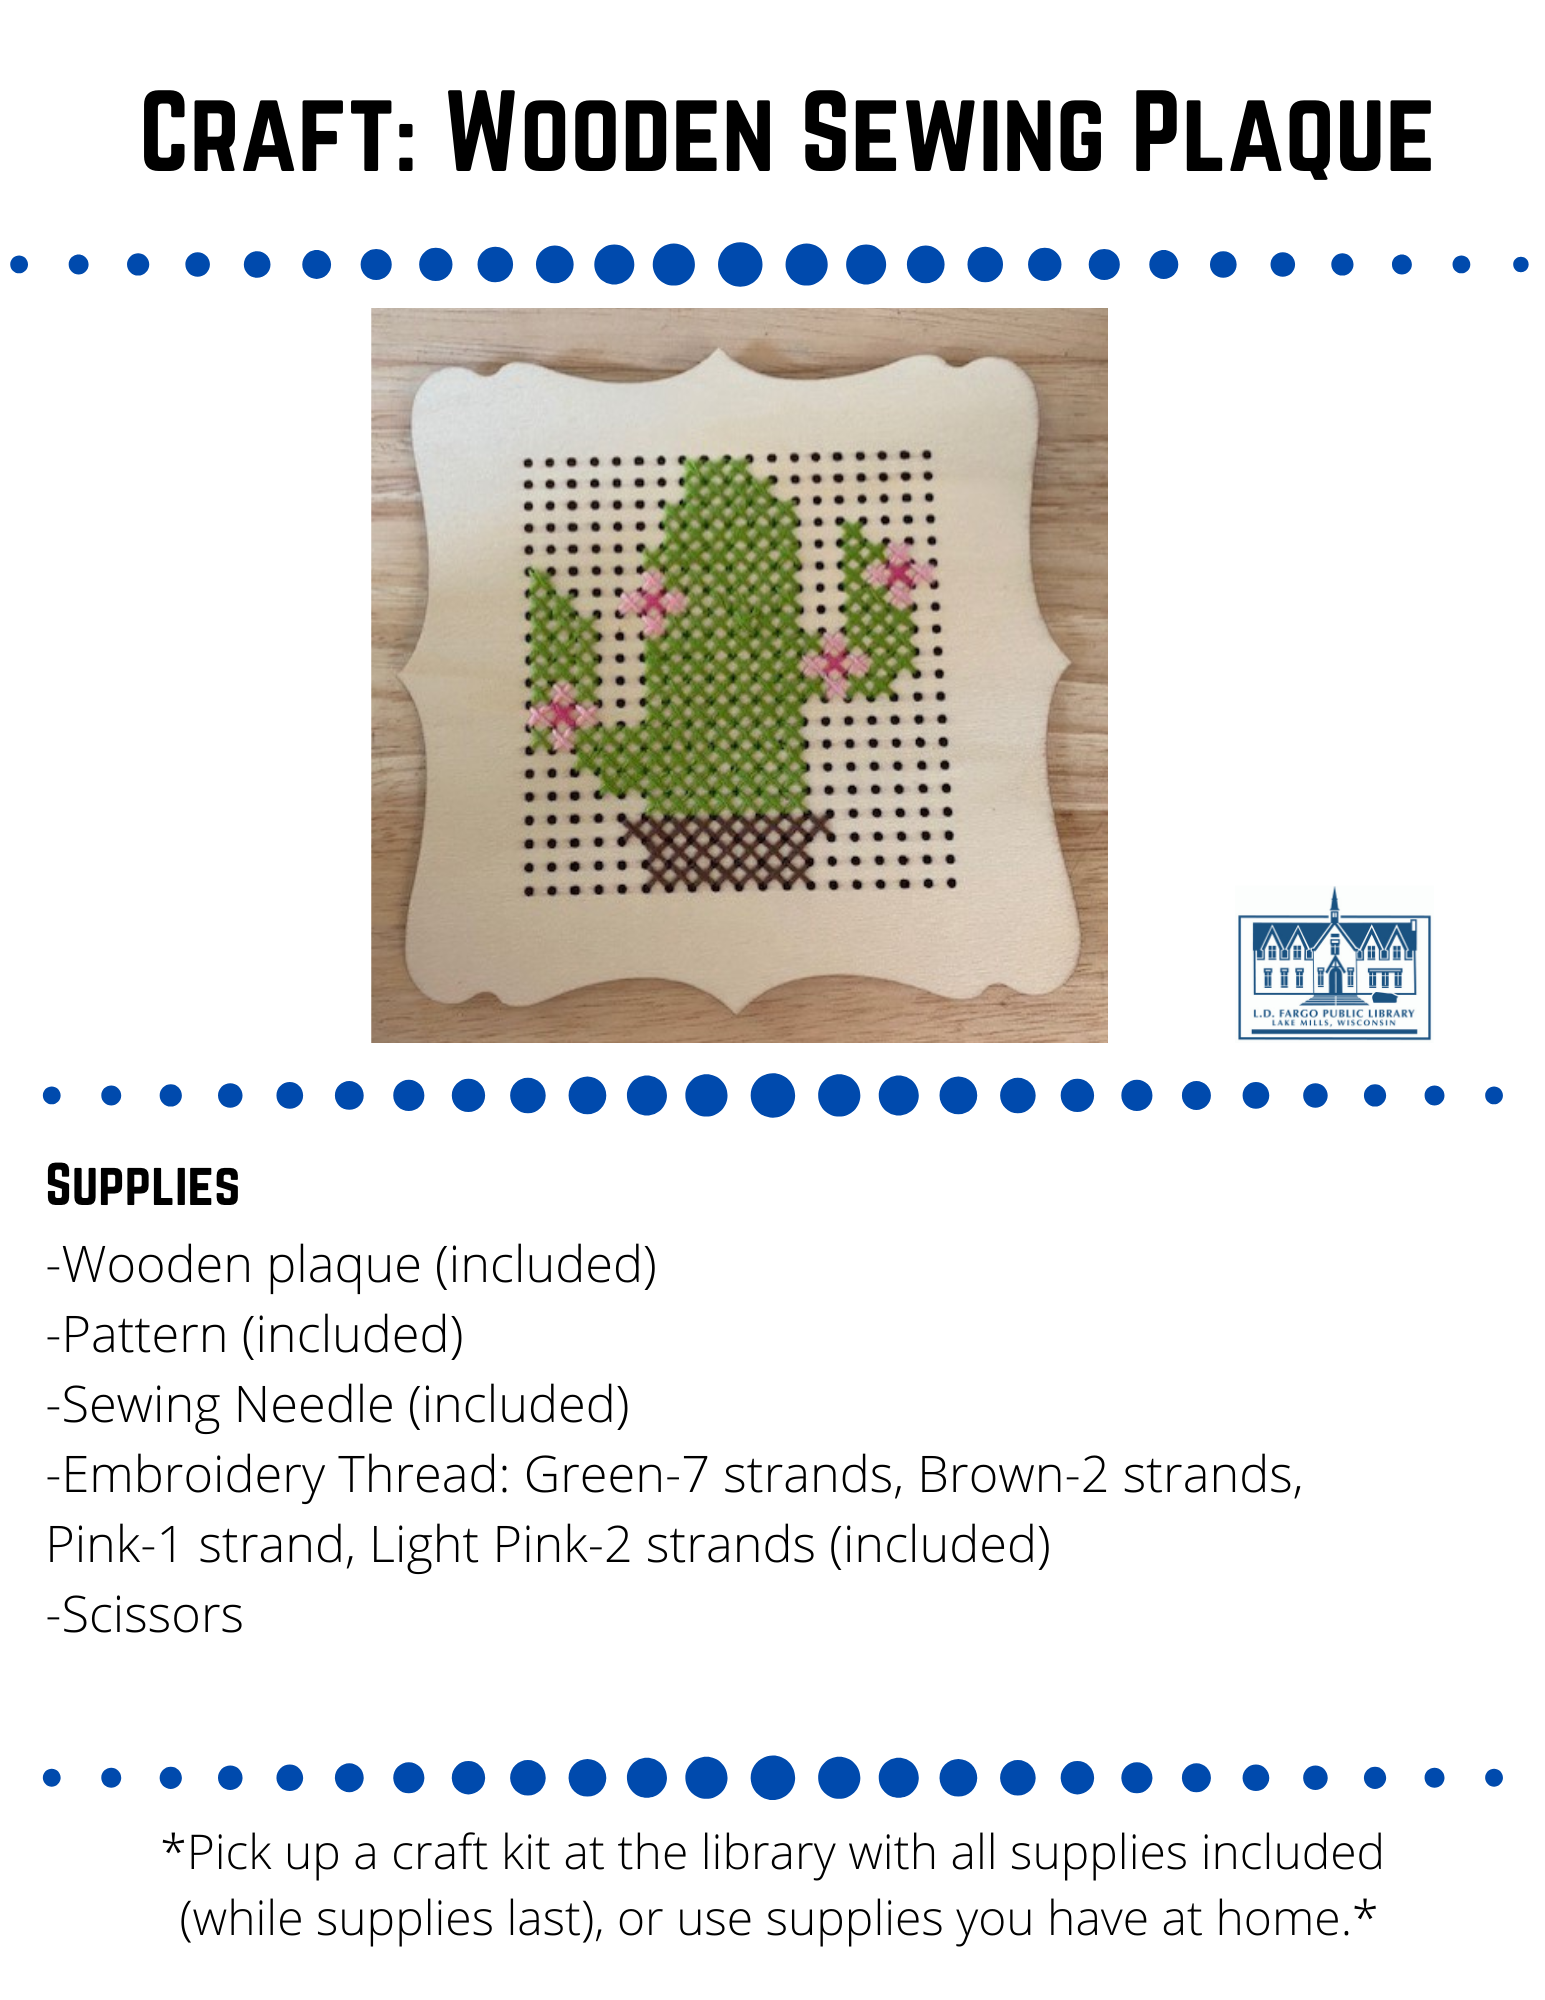 """Craft: Wooden Sewing Plaque Supplies  -Wooden plaque (included) -Pattern (included) -Sewing Needle (included) -Embroidery Thread: Green-7 strands, Brown-2 strands,  Pink-1 strand, Light Pink-2 strands (included) -Scissors  Directions   1. Before you begin make sure the wooden sewing plaque is set up correctly knowing which is top and sides. Notice the design on the wooden plaque has to be a certain way, otherwise the pattern of the cactus will not fit.    2. Thread your needle.  First start with the brown thread and work your way from the  bottom of the pattern to the top.  You will notice that each strand of thread has 6 pieces of thread, keep them as one strand. Pull the thread through the needle head. Once you have the thread through, the thread should be at uneven lengths. Only tie the knot in the long side of the thread. Here is a link on how to thread a needle.  https://youtu.be/xM5n_gmpIrY  Note: Make sure to do a knot a few times to make sure it doesn't pull through your project.  3. Follow the colors on your pattern with the thread colors.  You will be making an """"x"""" stitch for the whole project.  This is called cross stitching.  Here is a link on how to basic cross stitch.  https://www.youtube.com/watch?v=6ogAHwRK7oE  Note: The squares on the pattern match with the holes on the wooden plaque.  Make sure to match them or the pattern won't fit on your wooden plaque.  4.  Once you have finished one thread, you will need to finish off your stitching before moving on to a new piece of thread. Skip ahead to 3:17   in the video for a demo.   https://www.youtube.com/watch?v=NEcNSrTj1DY  5.  Repeat these steps until you have completed your pattern."""